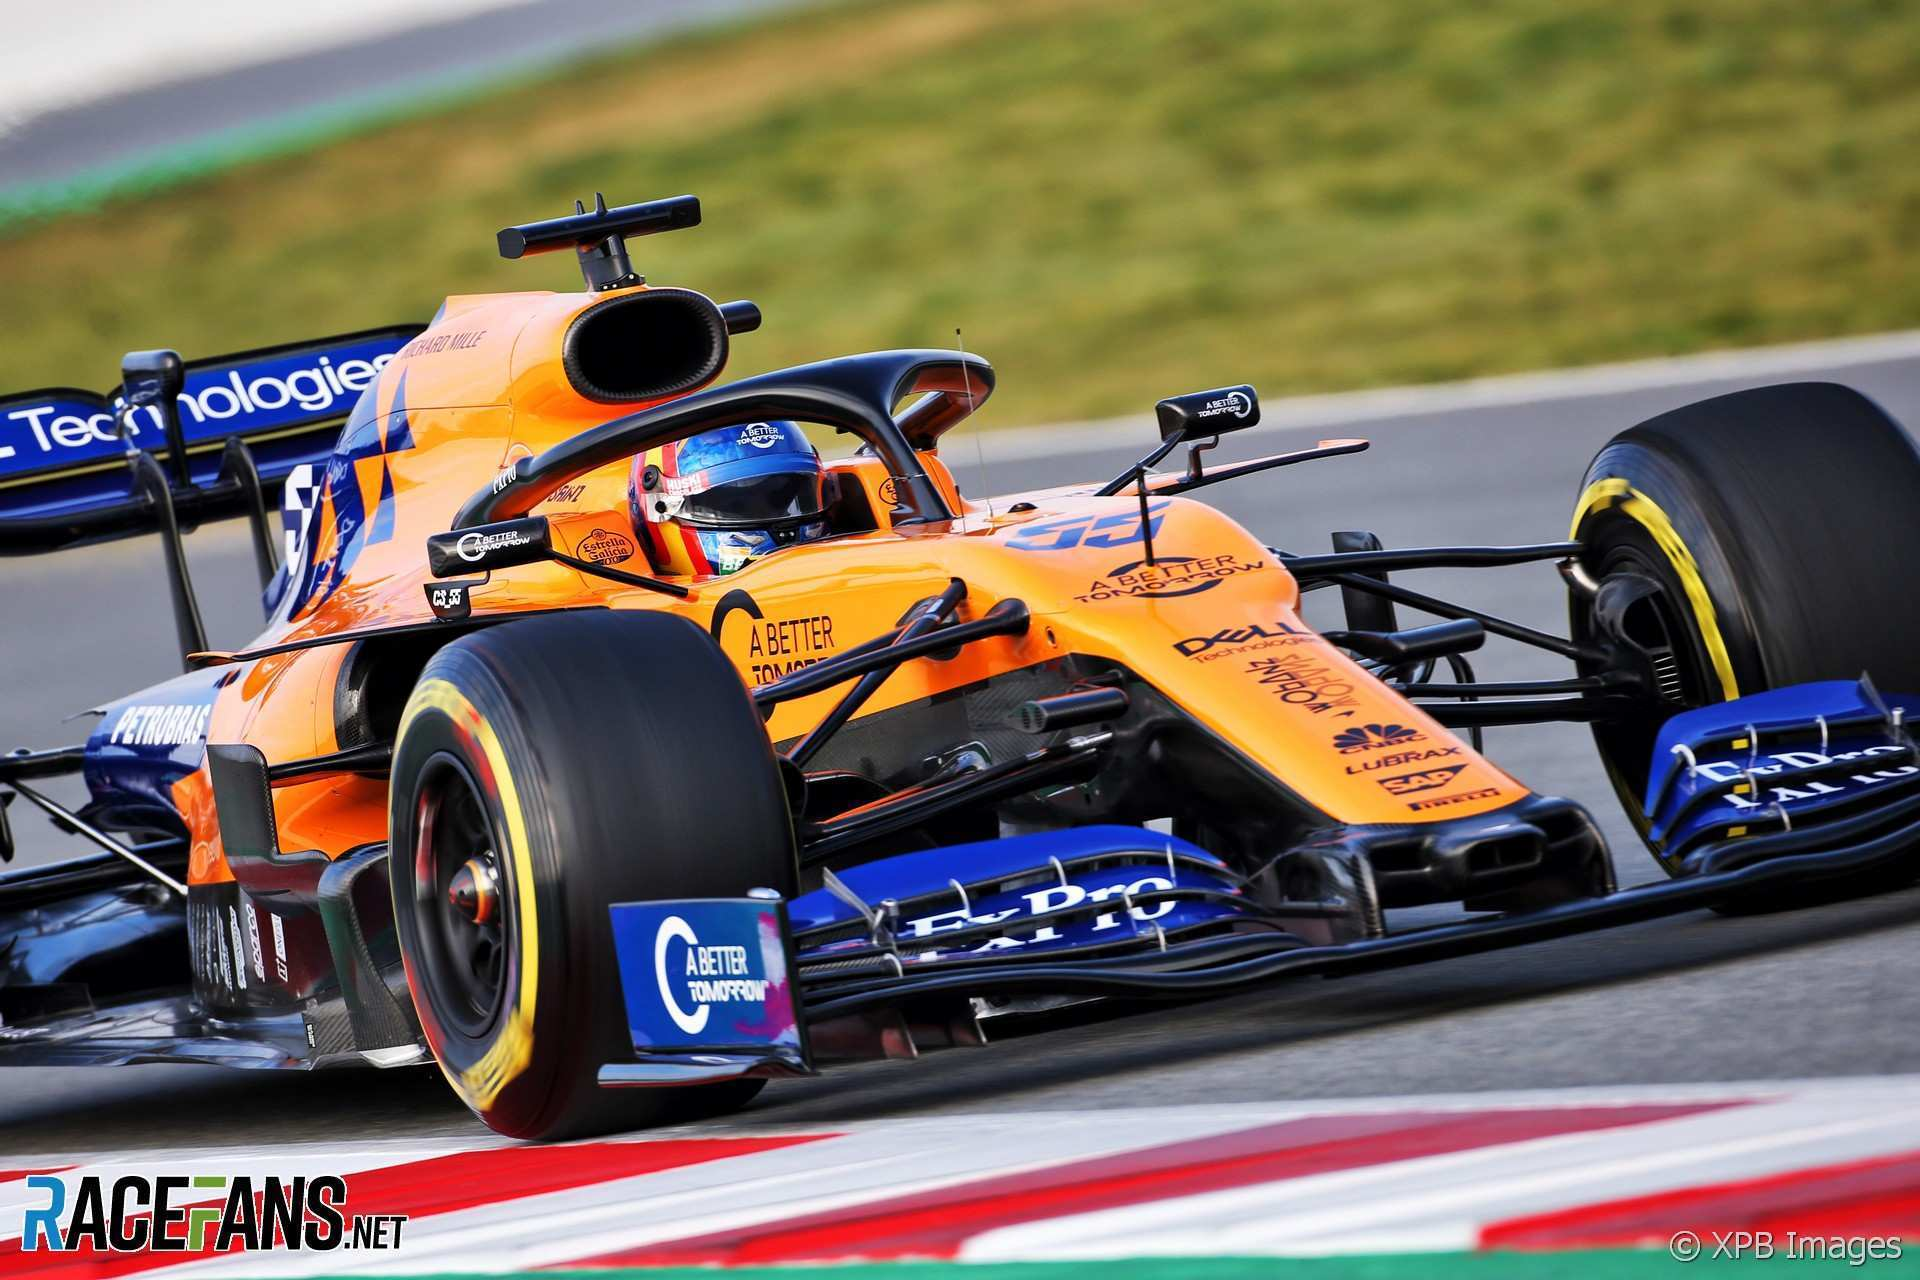 49 All New 2019 Mclaren F1 Specs And Review